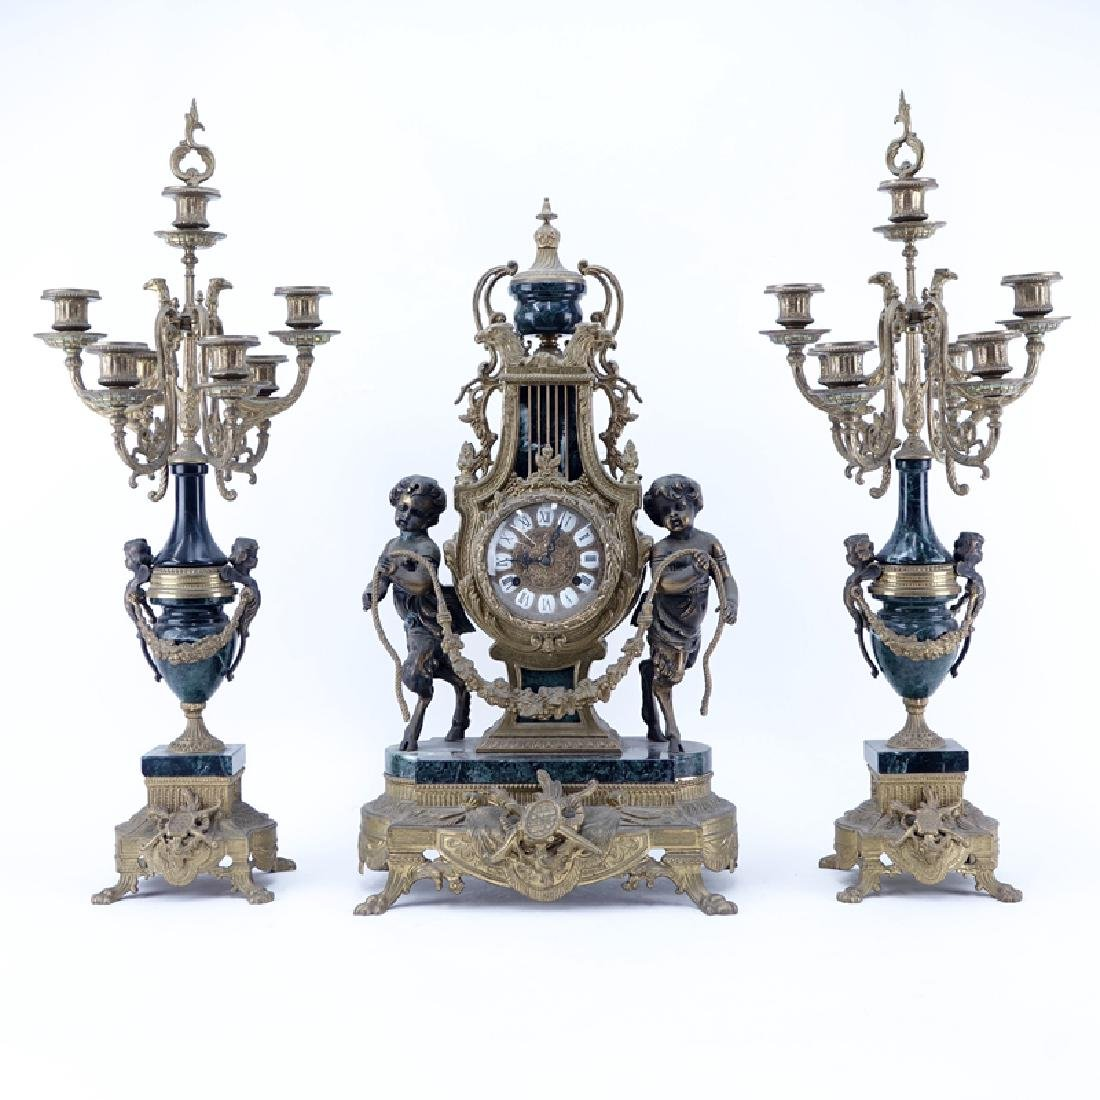 19/20th Century Empire Style Gilt Bronze and Marble